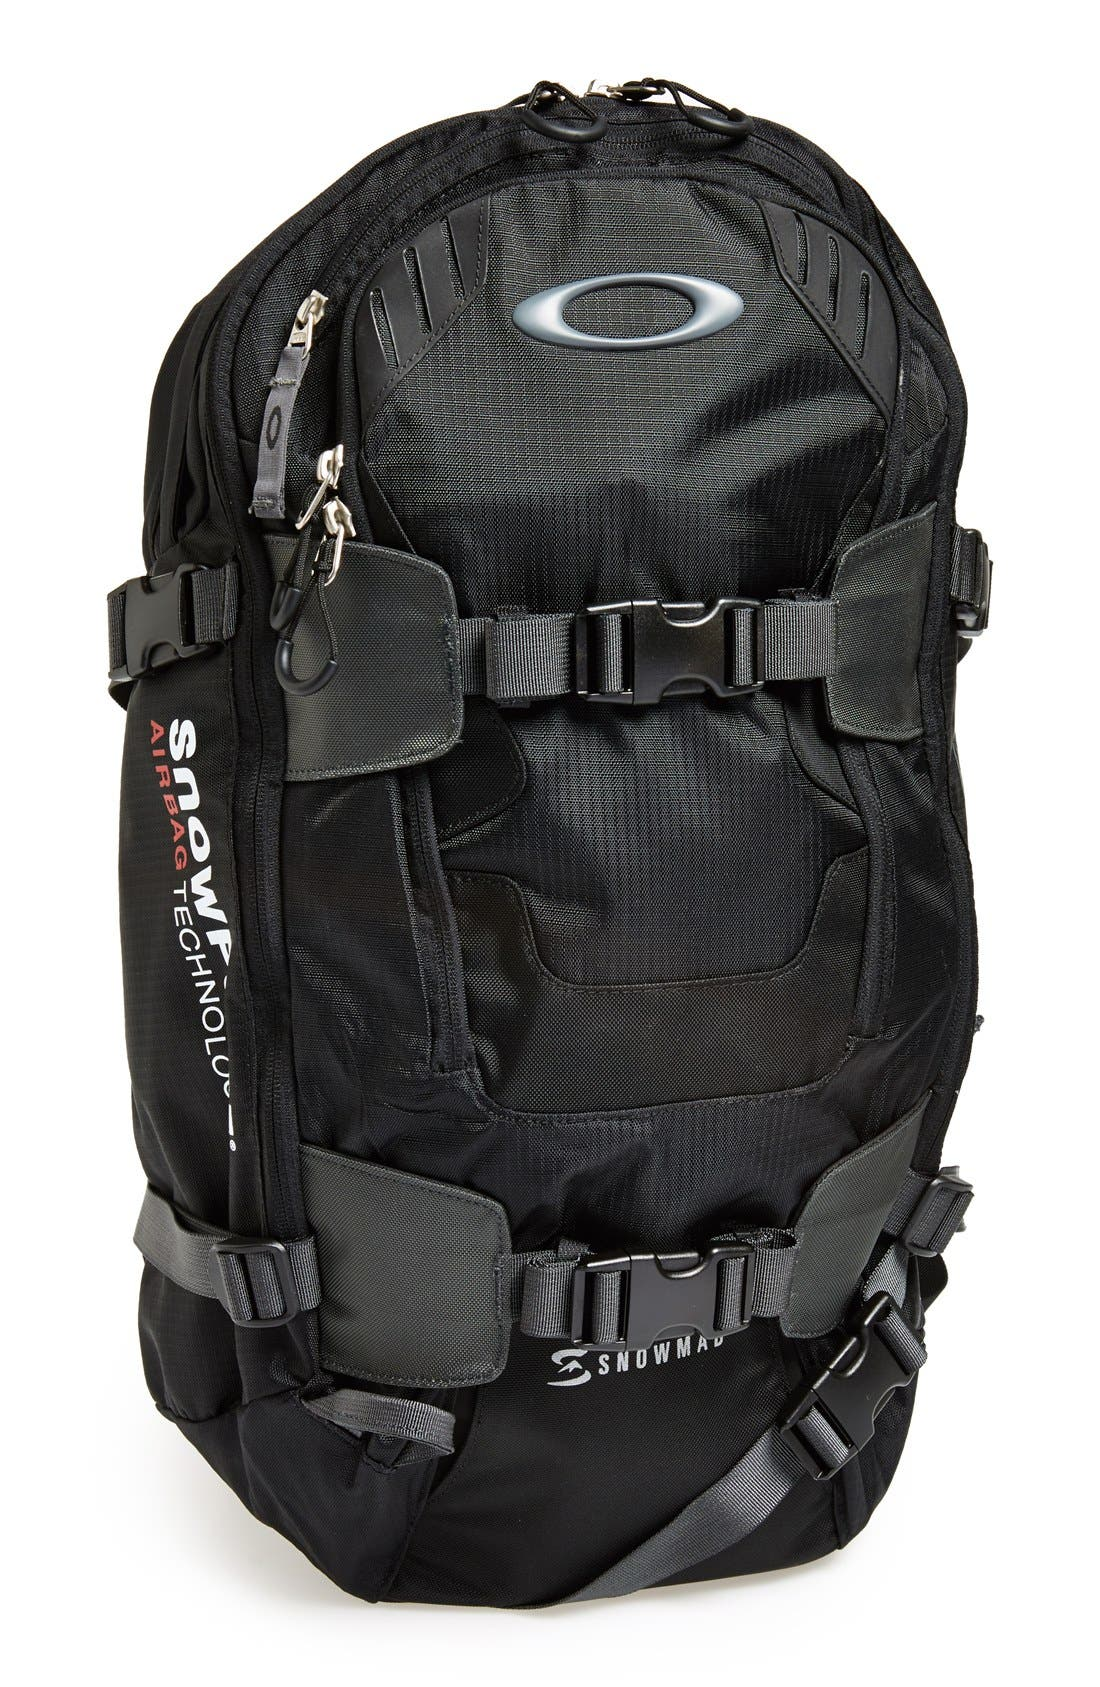 OAKLEY 'Snowmad' Backpack, Main, color, 001